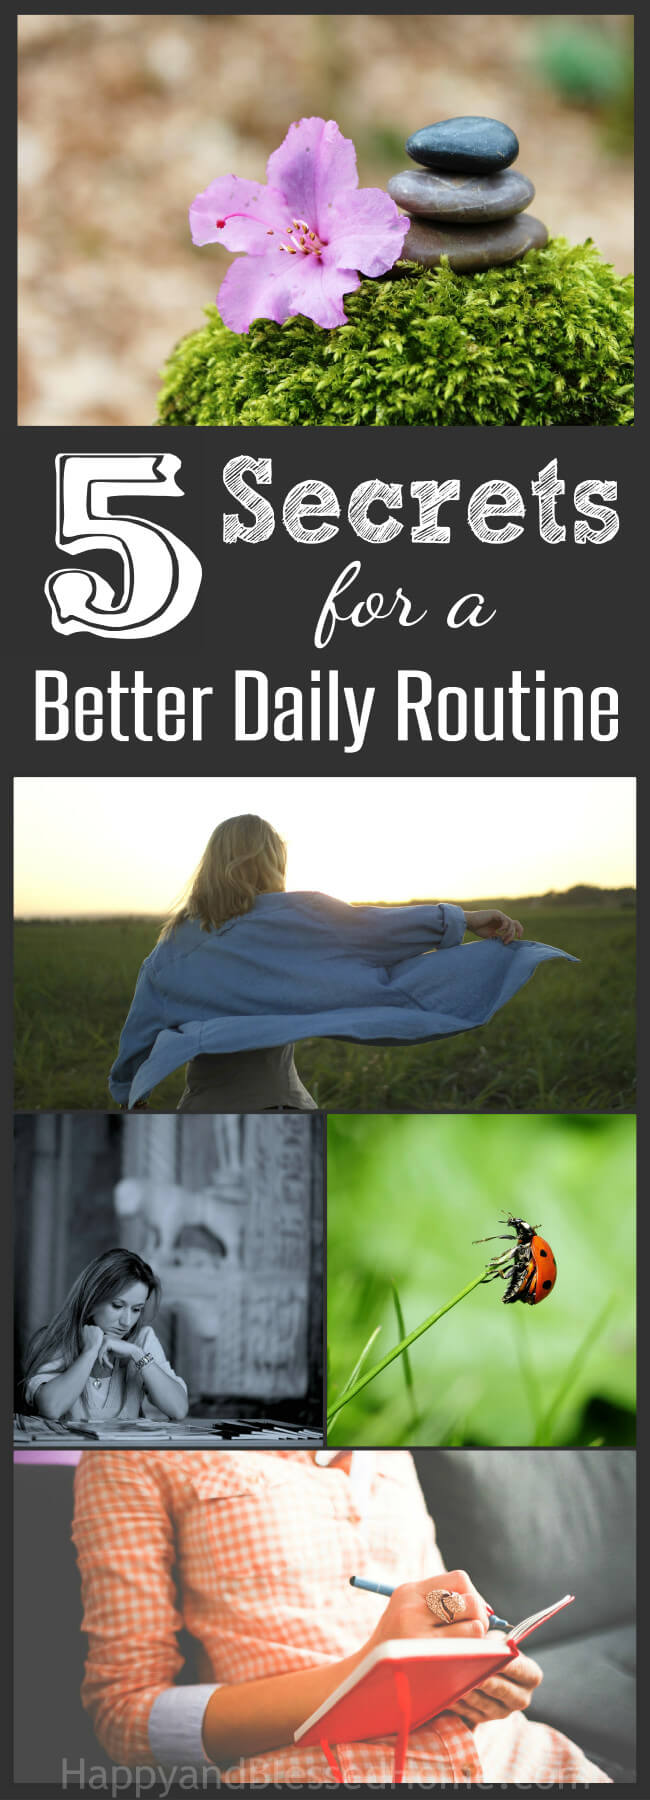 5 Secrets for a Better Daily Routine - practical advice for moms